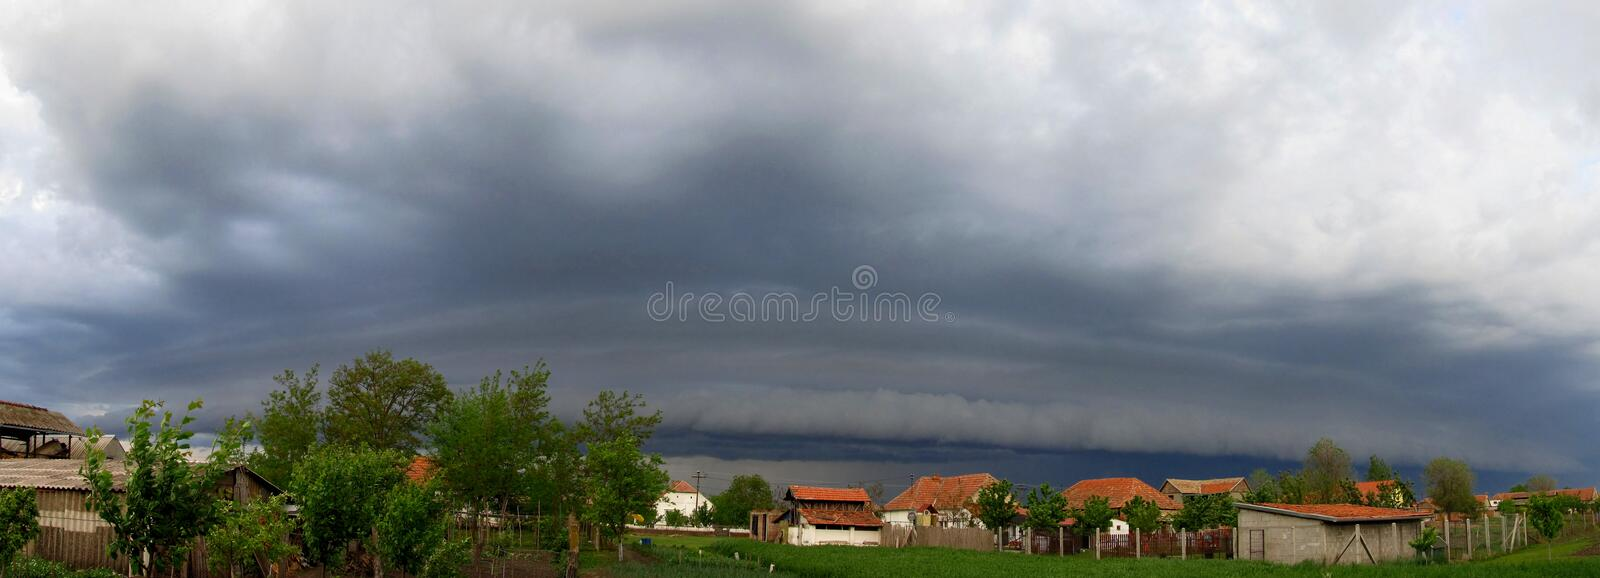 Thunderstorm with dramatic shelf cloud stock image